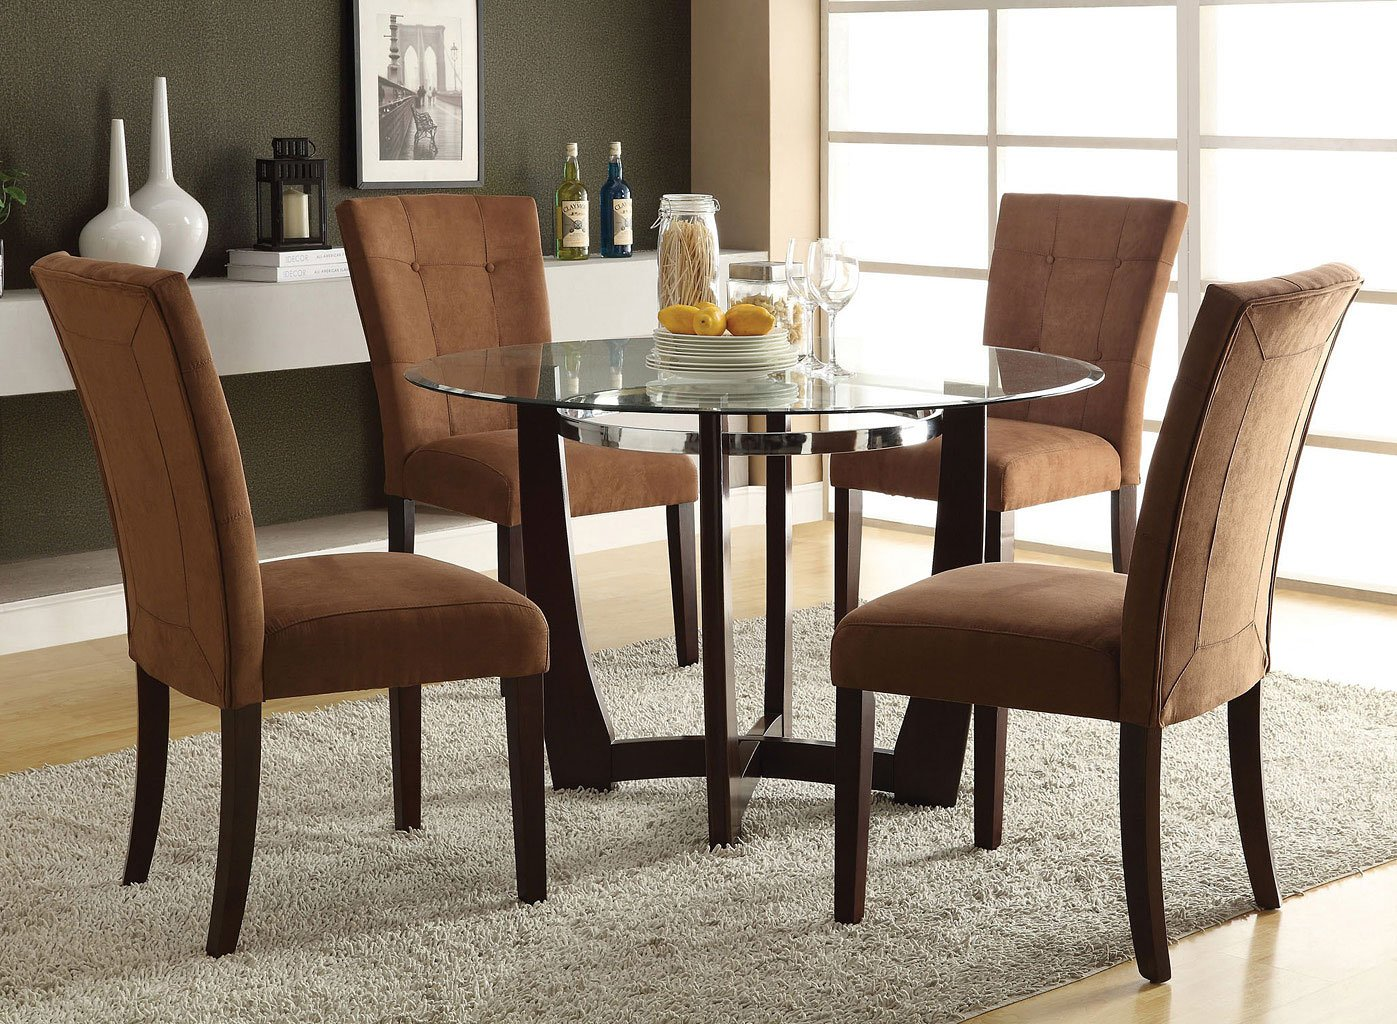 Baldwin dining room set w chocolate chairs acme furniture furniture cart